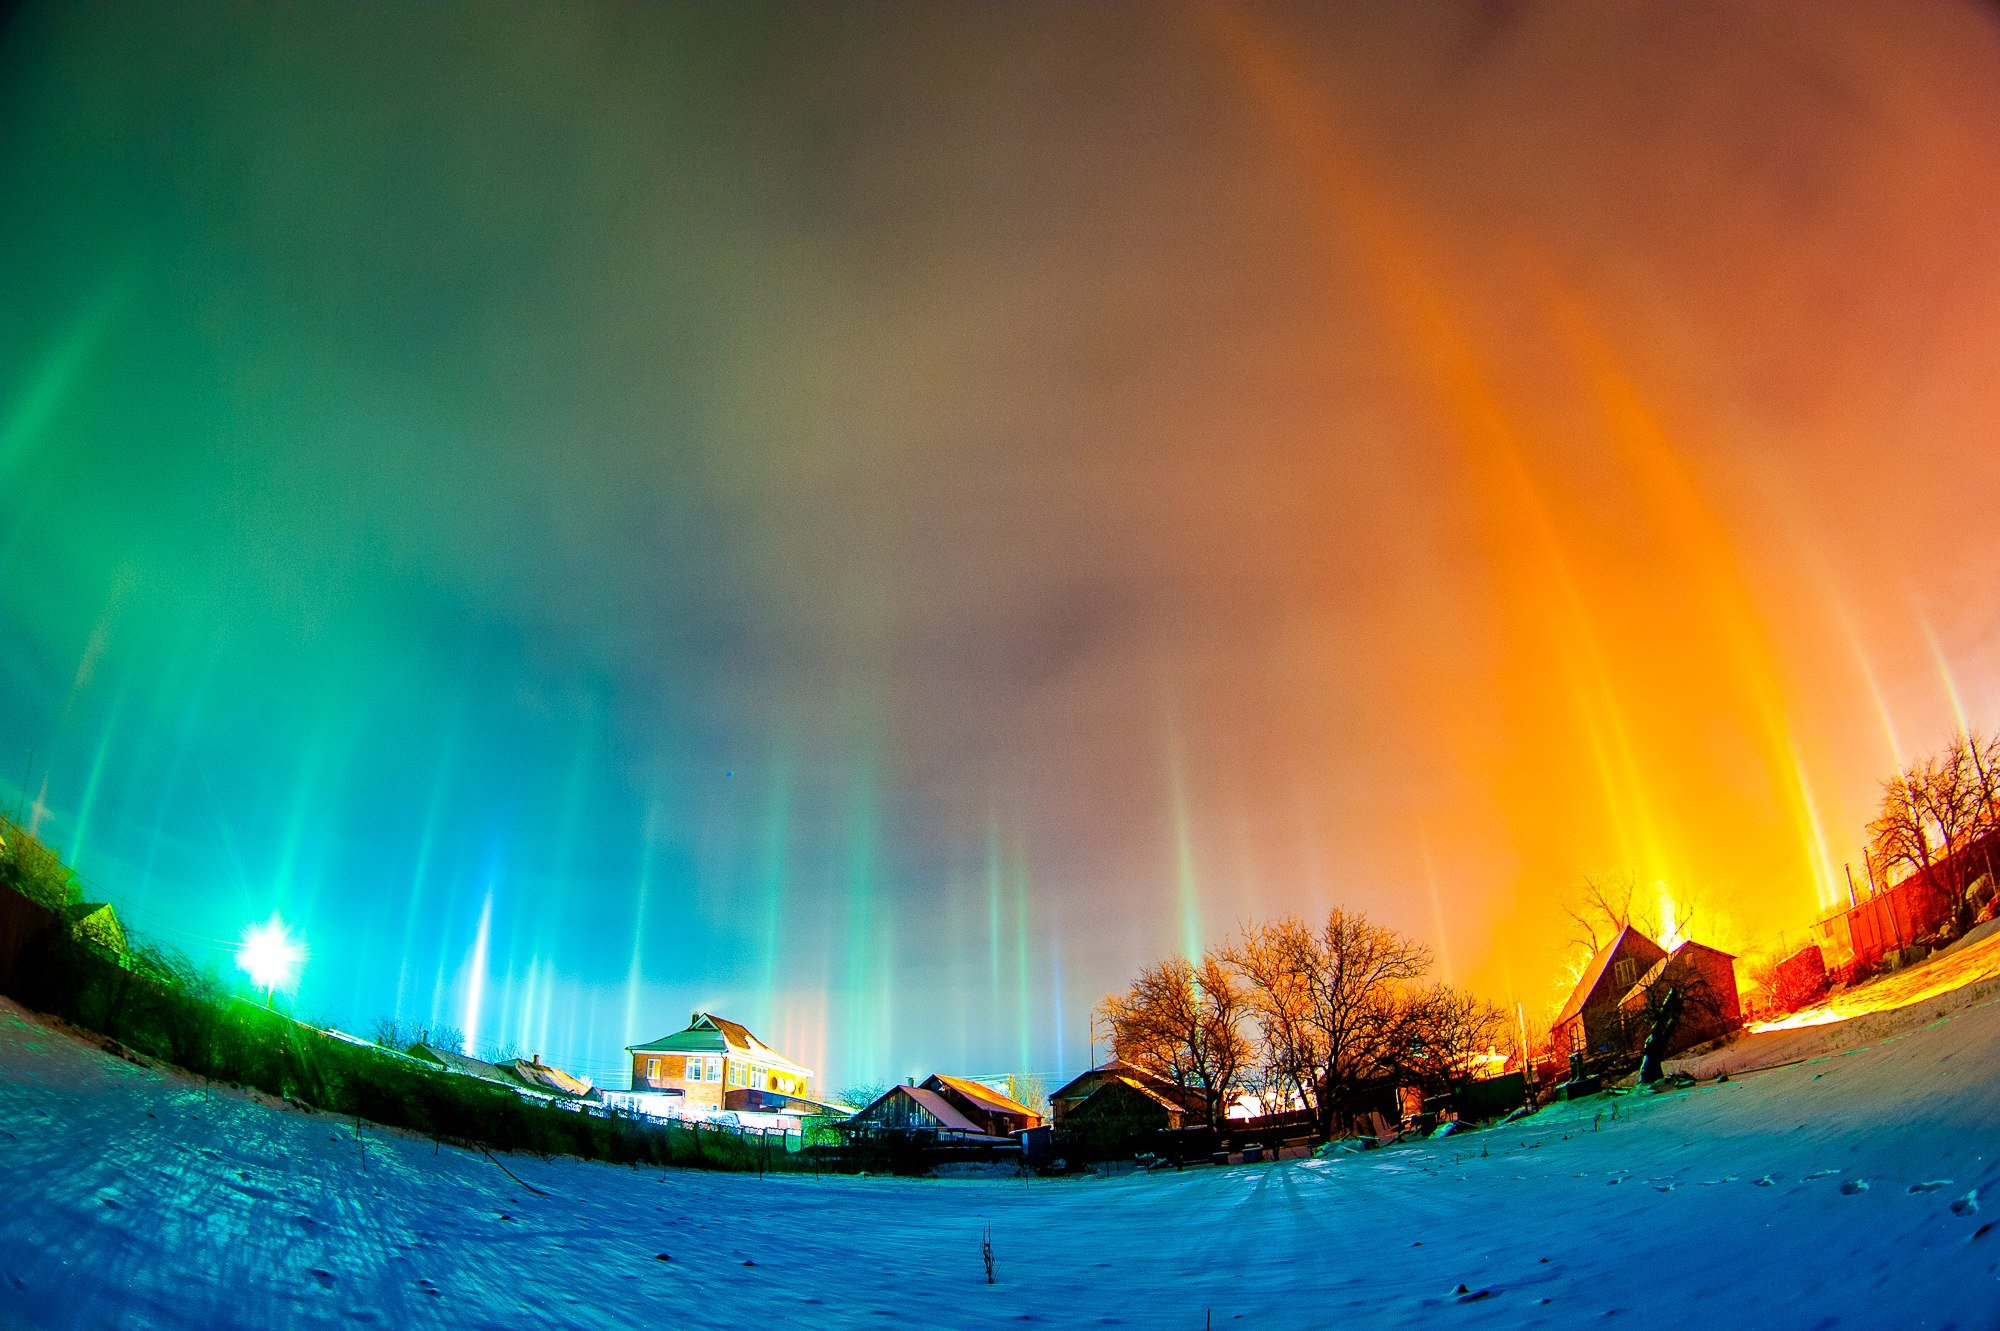 Glowing interdimensional portals open up in the sky of ...